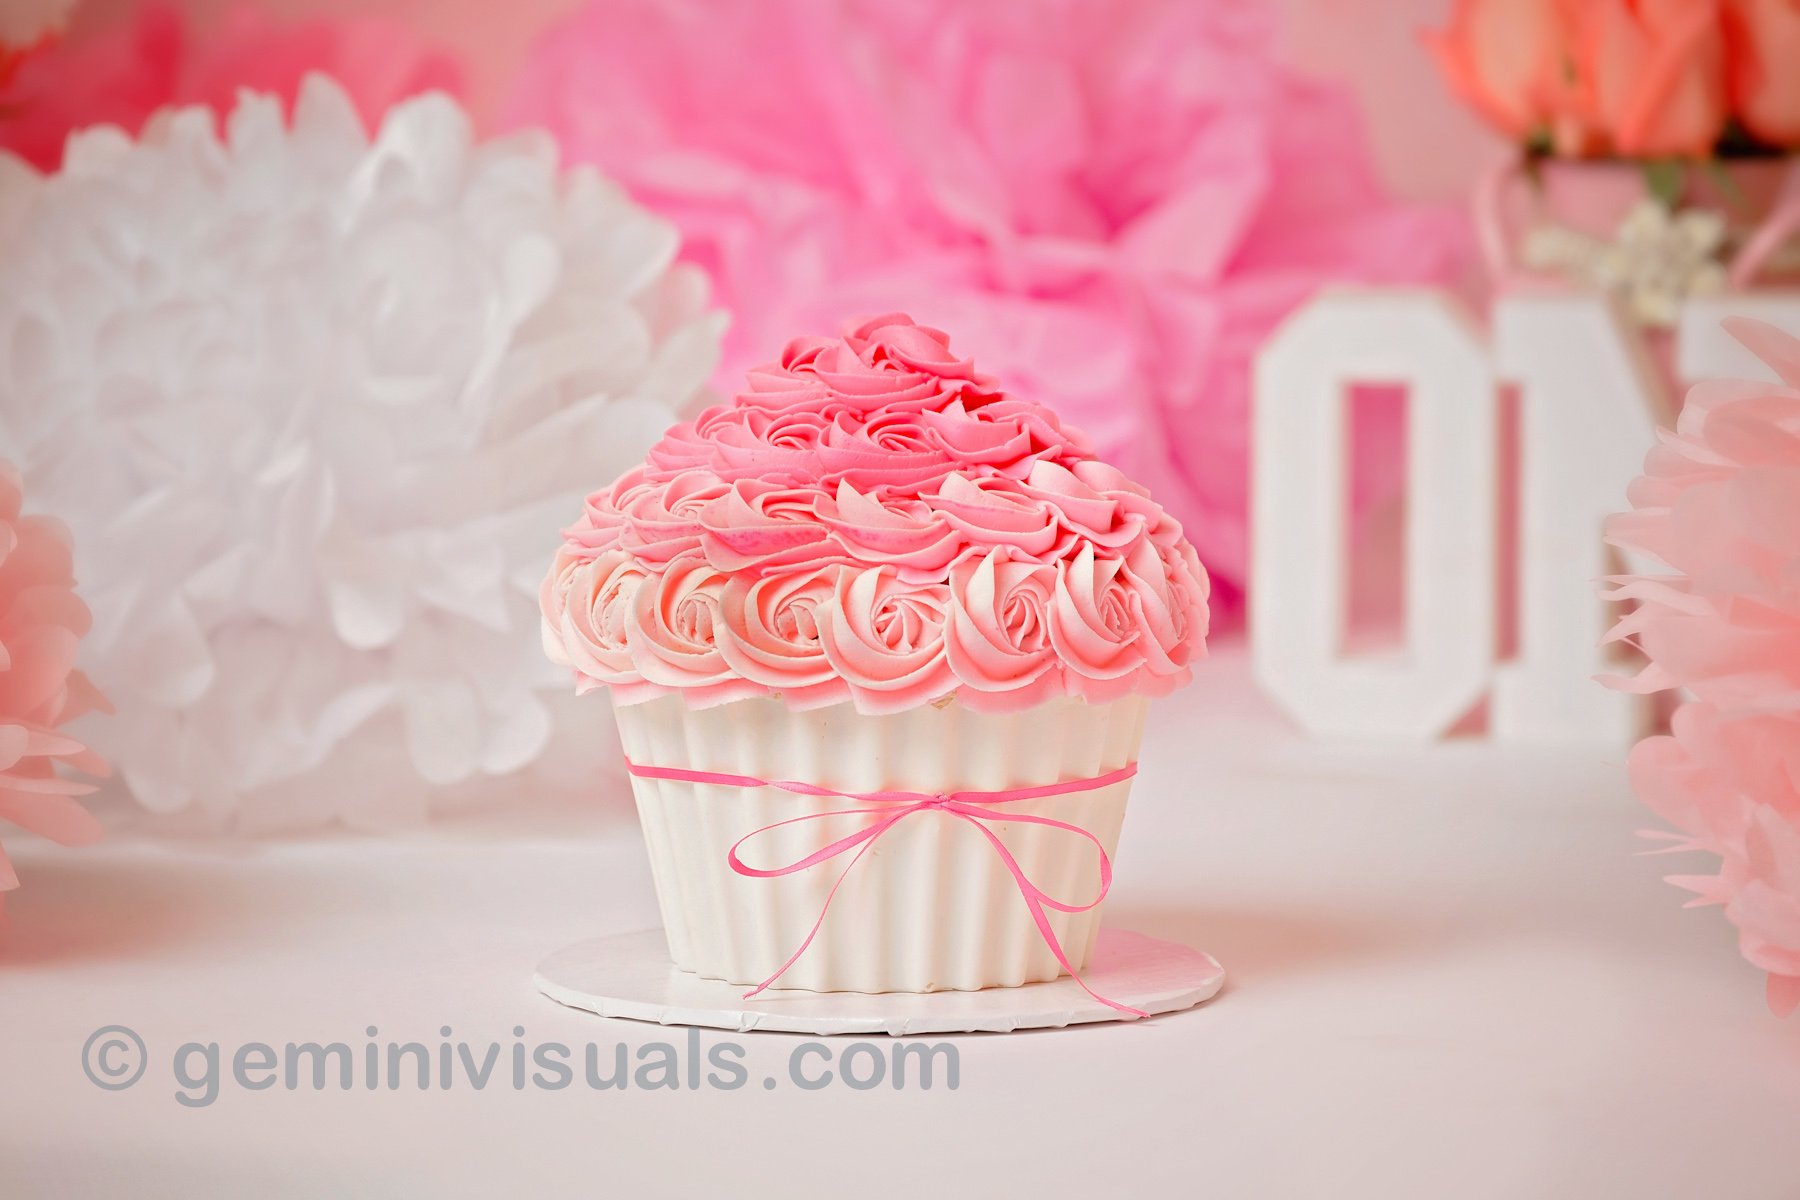 cake smash, family photos, baby turns one, maternity photography, baby photography, milestone photos, gemini visuals